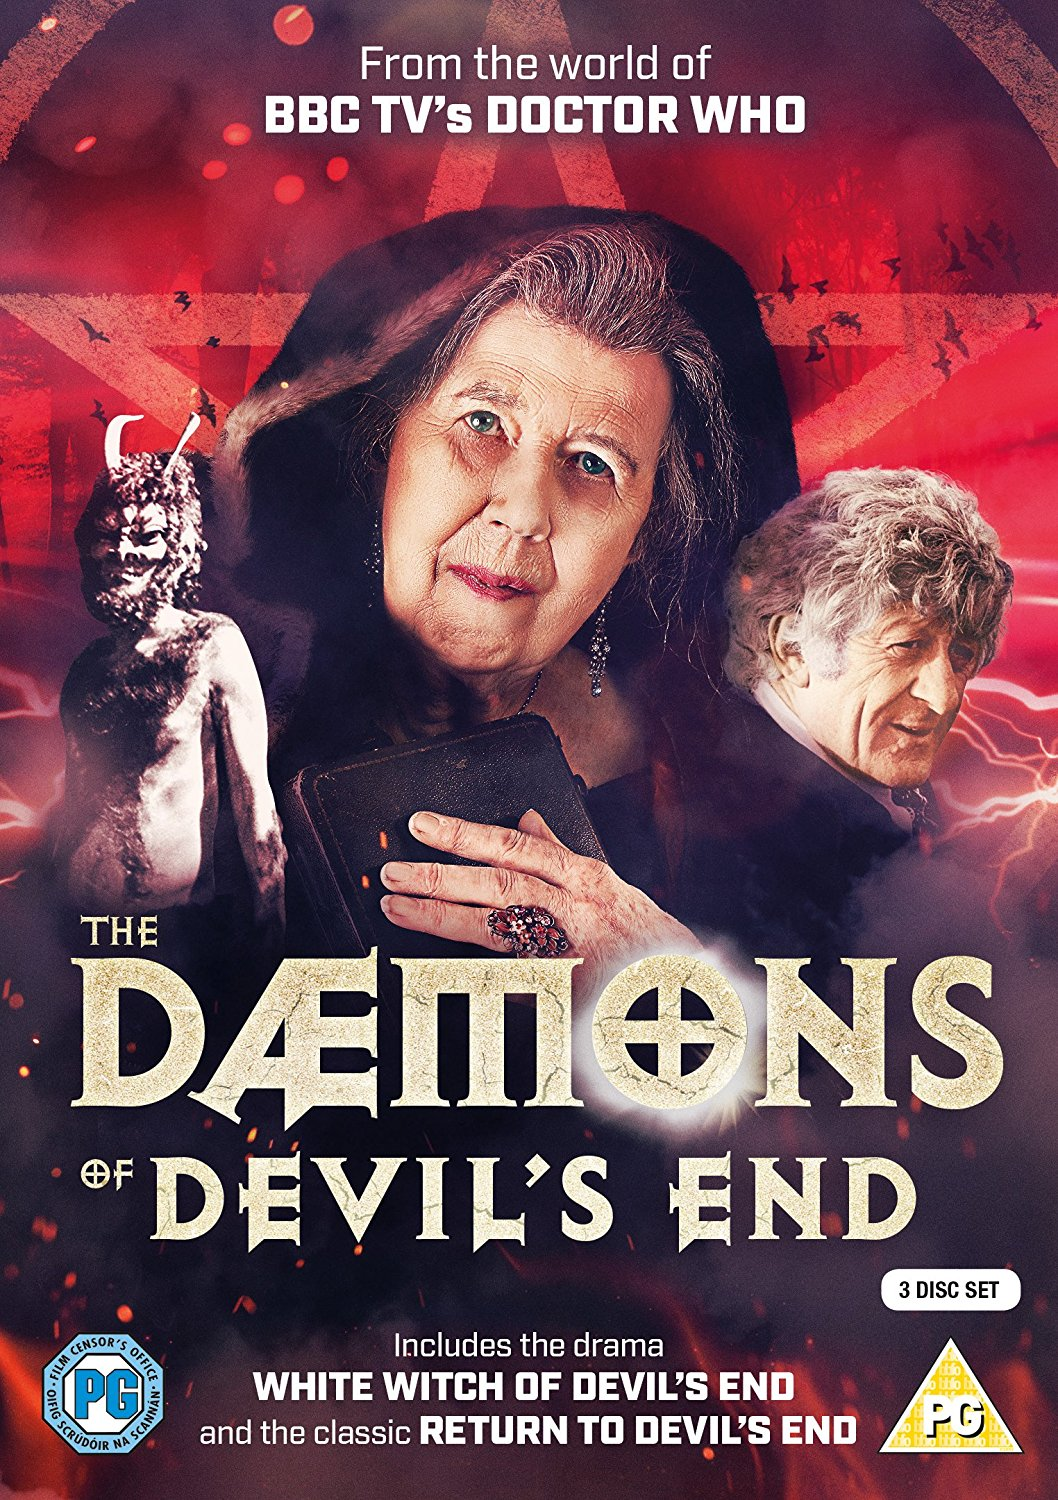 Great news announced for #DoctorWho fans as we have the release date of the new 3 #DVD set of The Daemons of Devil's End